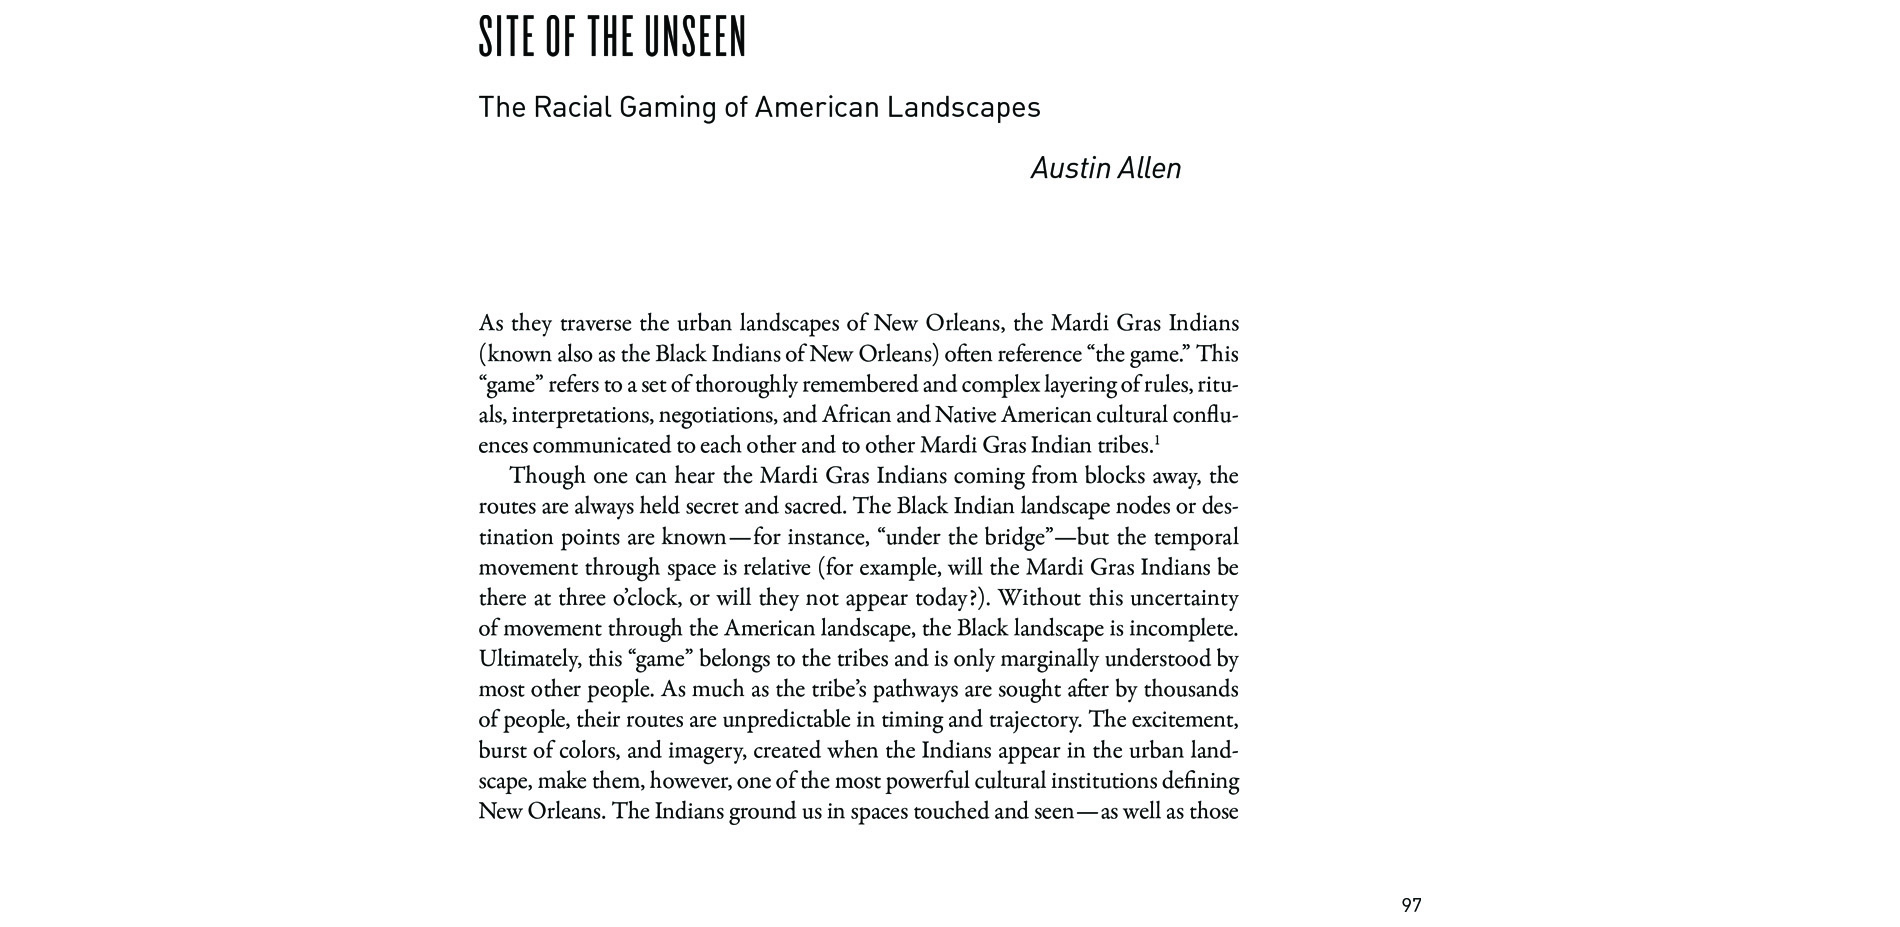 Black Landscapes Matter, Site of the Unseen: The Racial Gaming of American Landscapes (pg. 97)